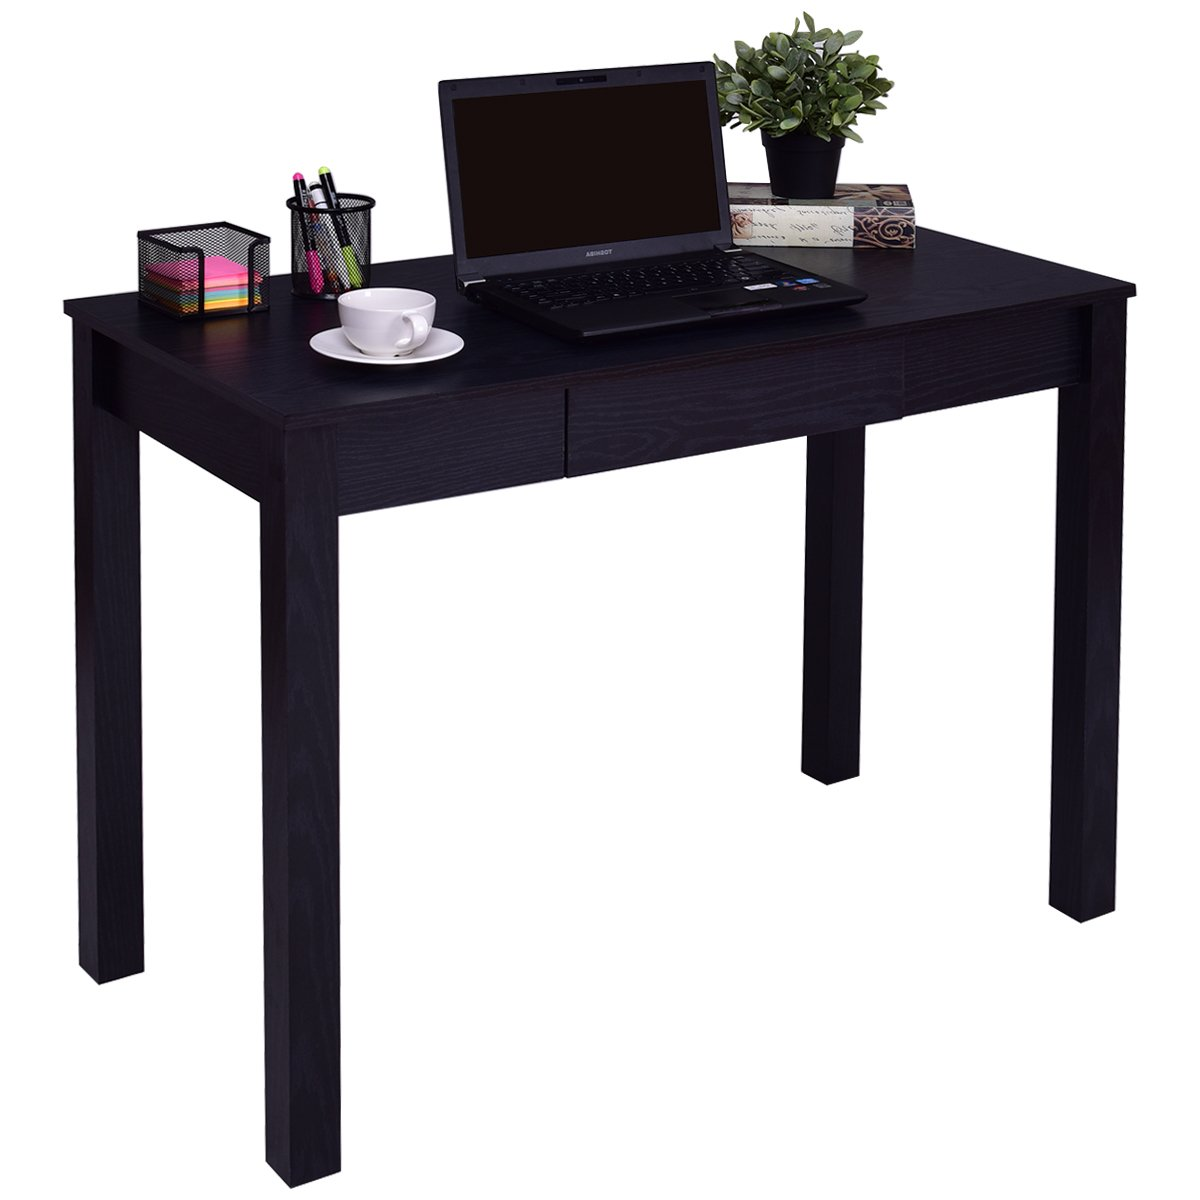 TANGKULA Computer Desk with Drawer Home Office Compact Efficient Laptop PC Desk Wood Workstation Writing Study Table (Black)